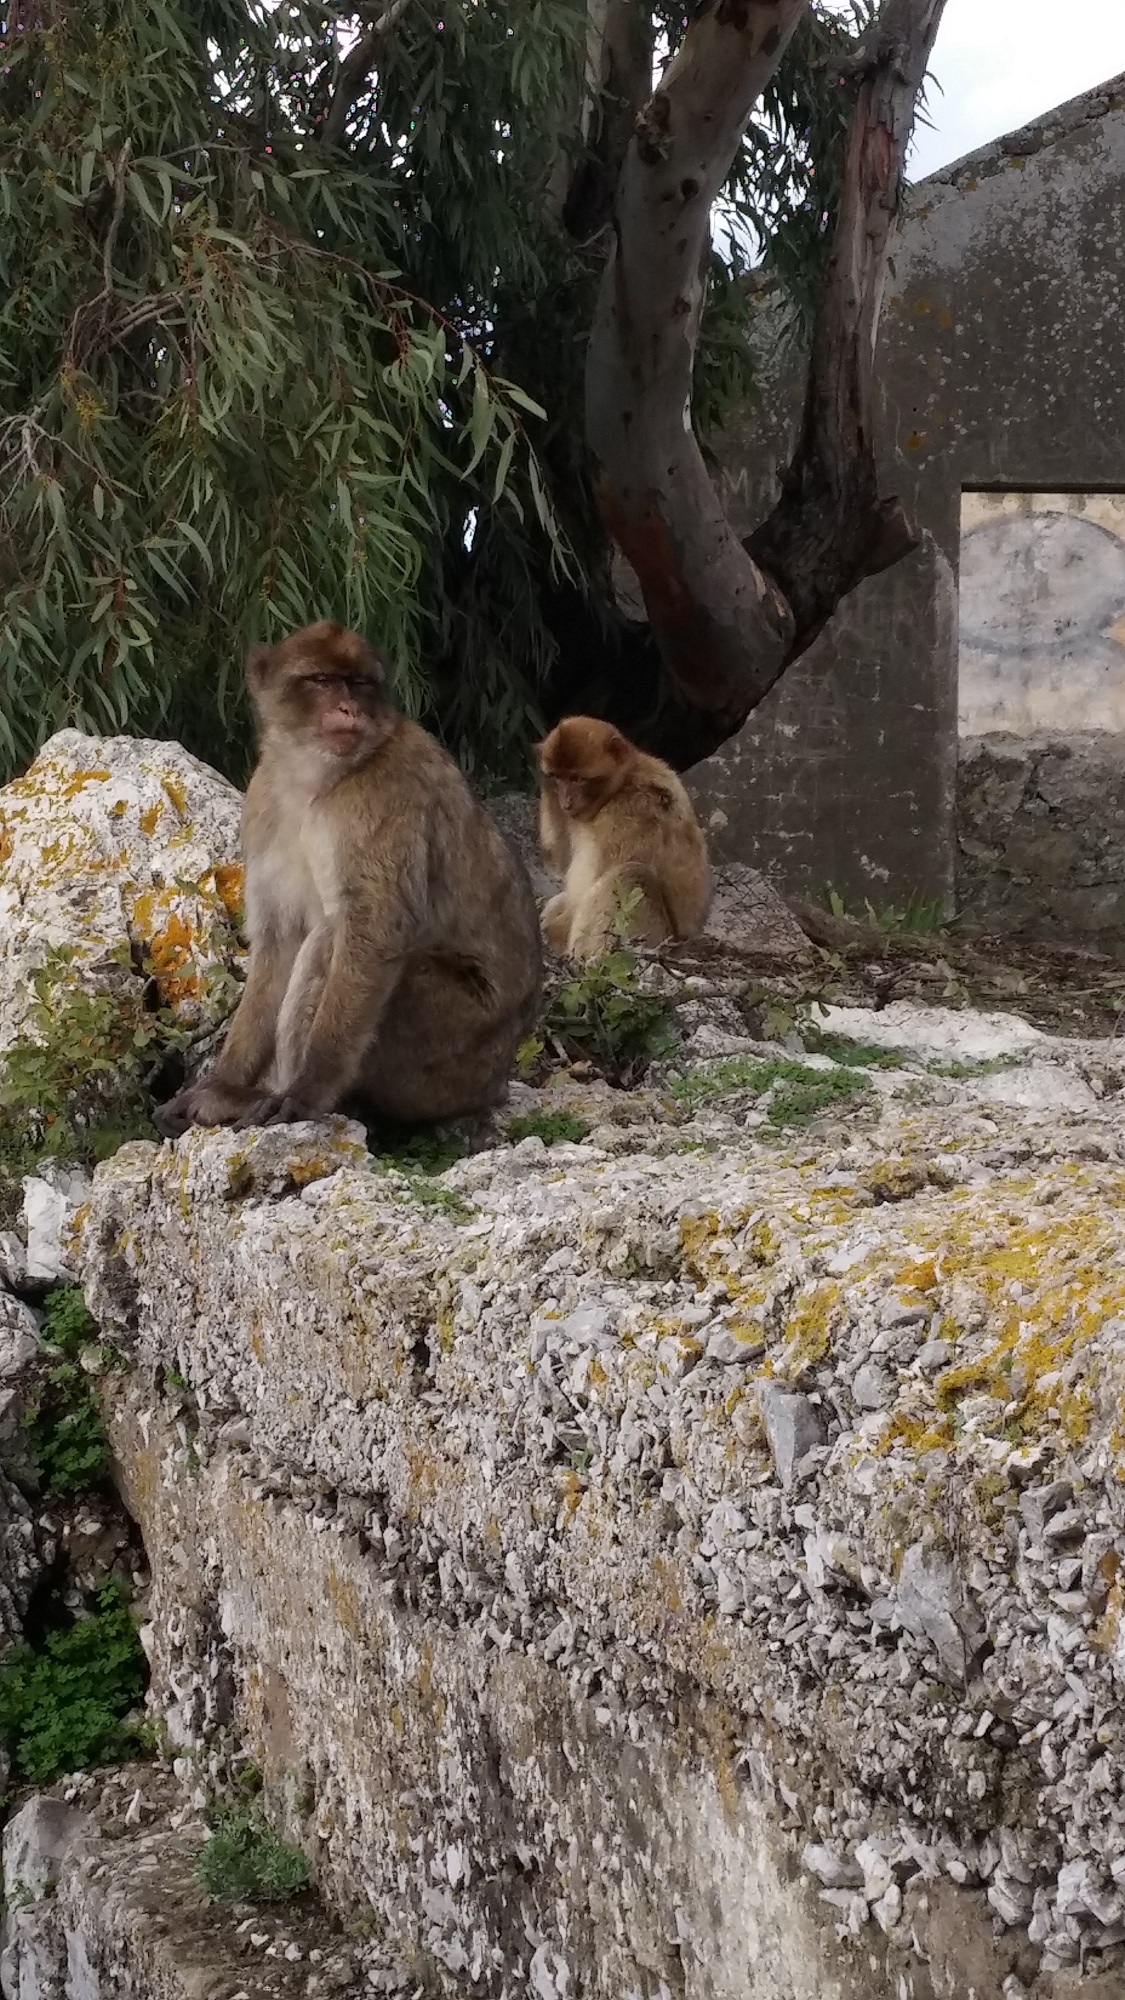 gibraltar singes small